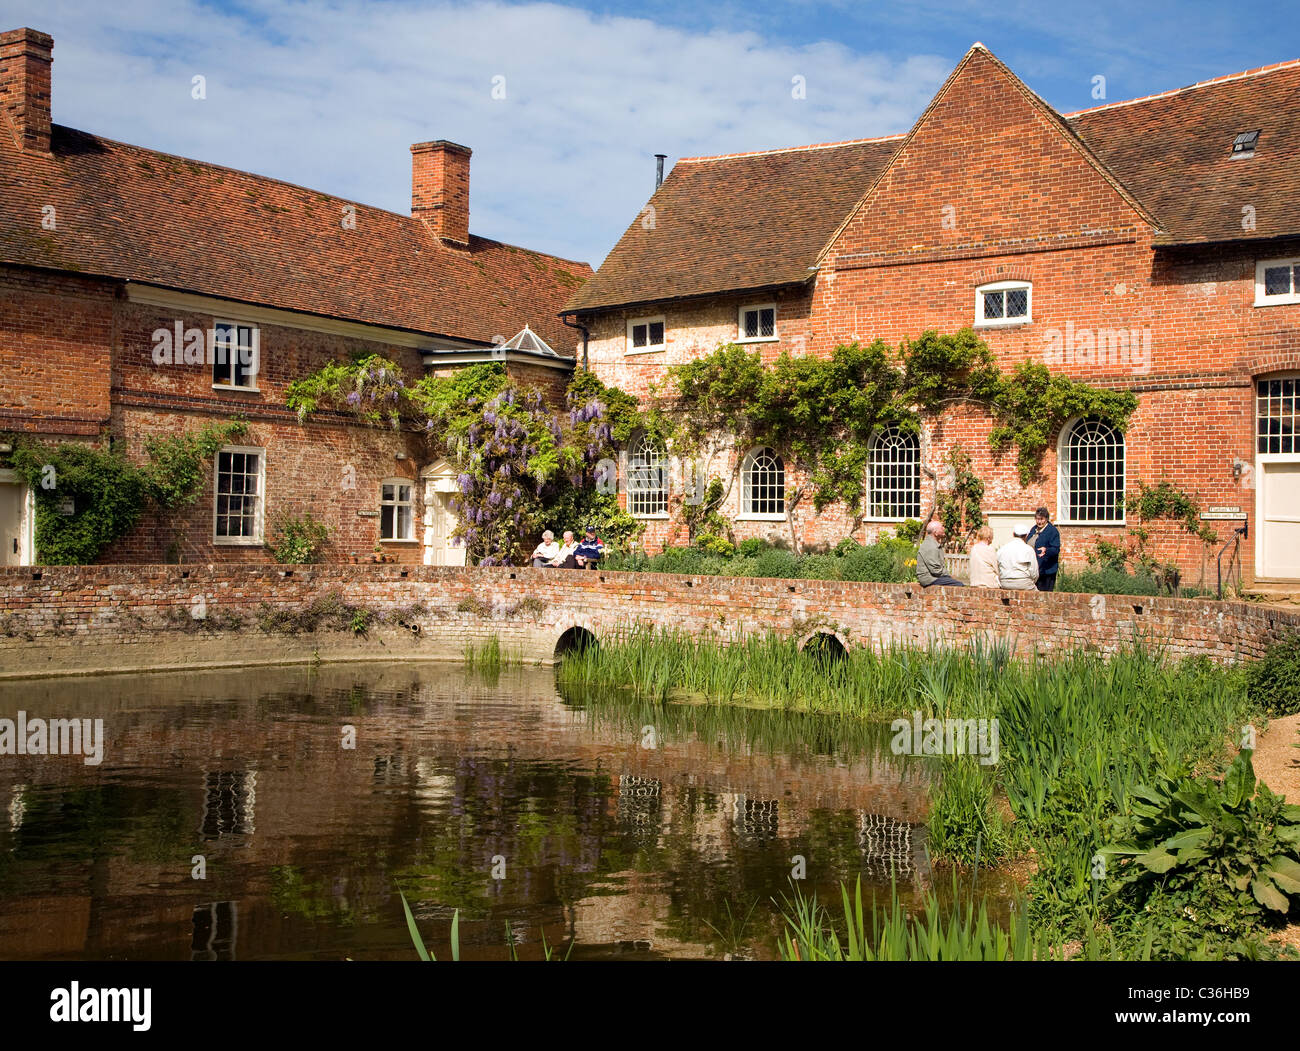 Flatford mill field studies council building Suffolk England Stock Photo